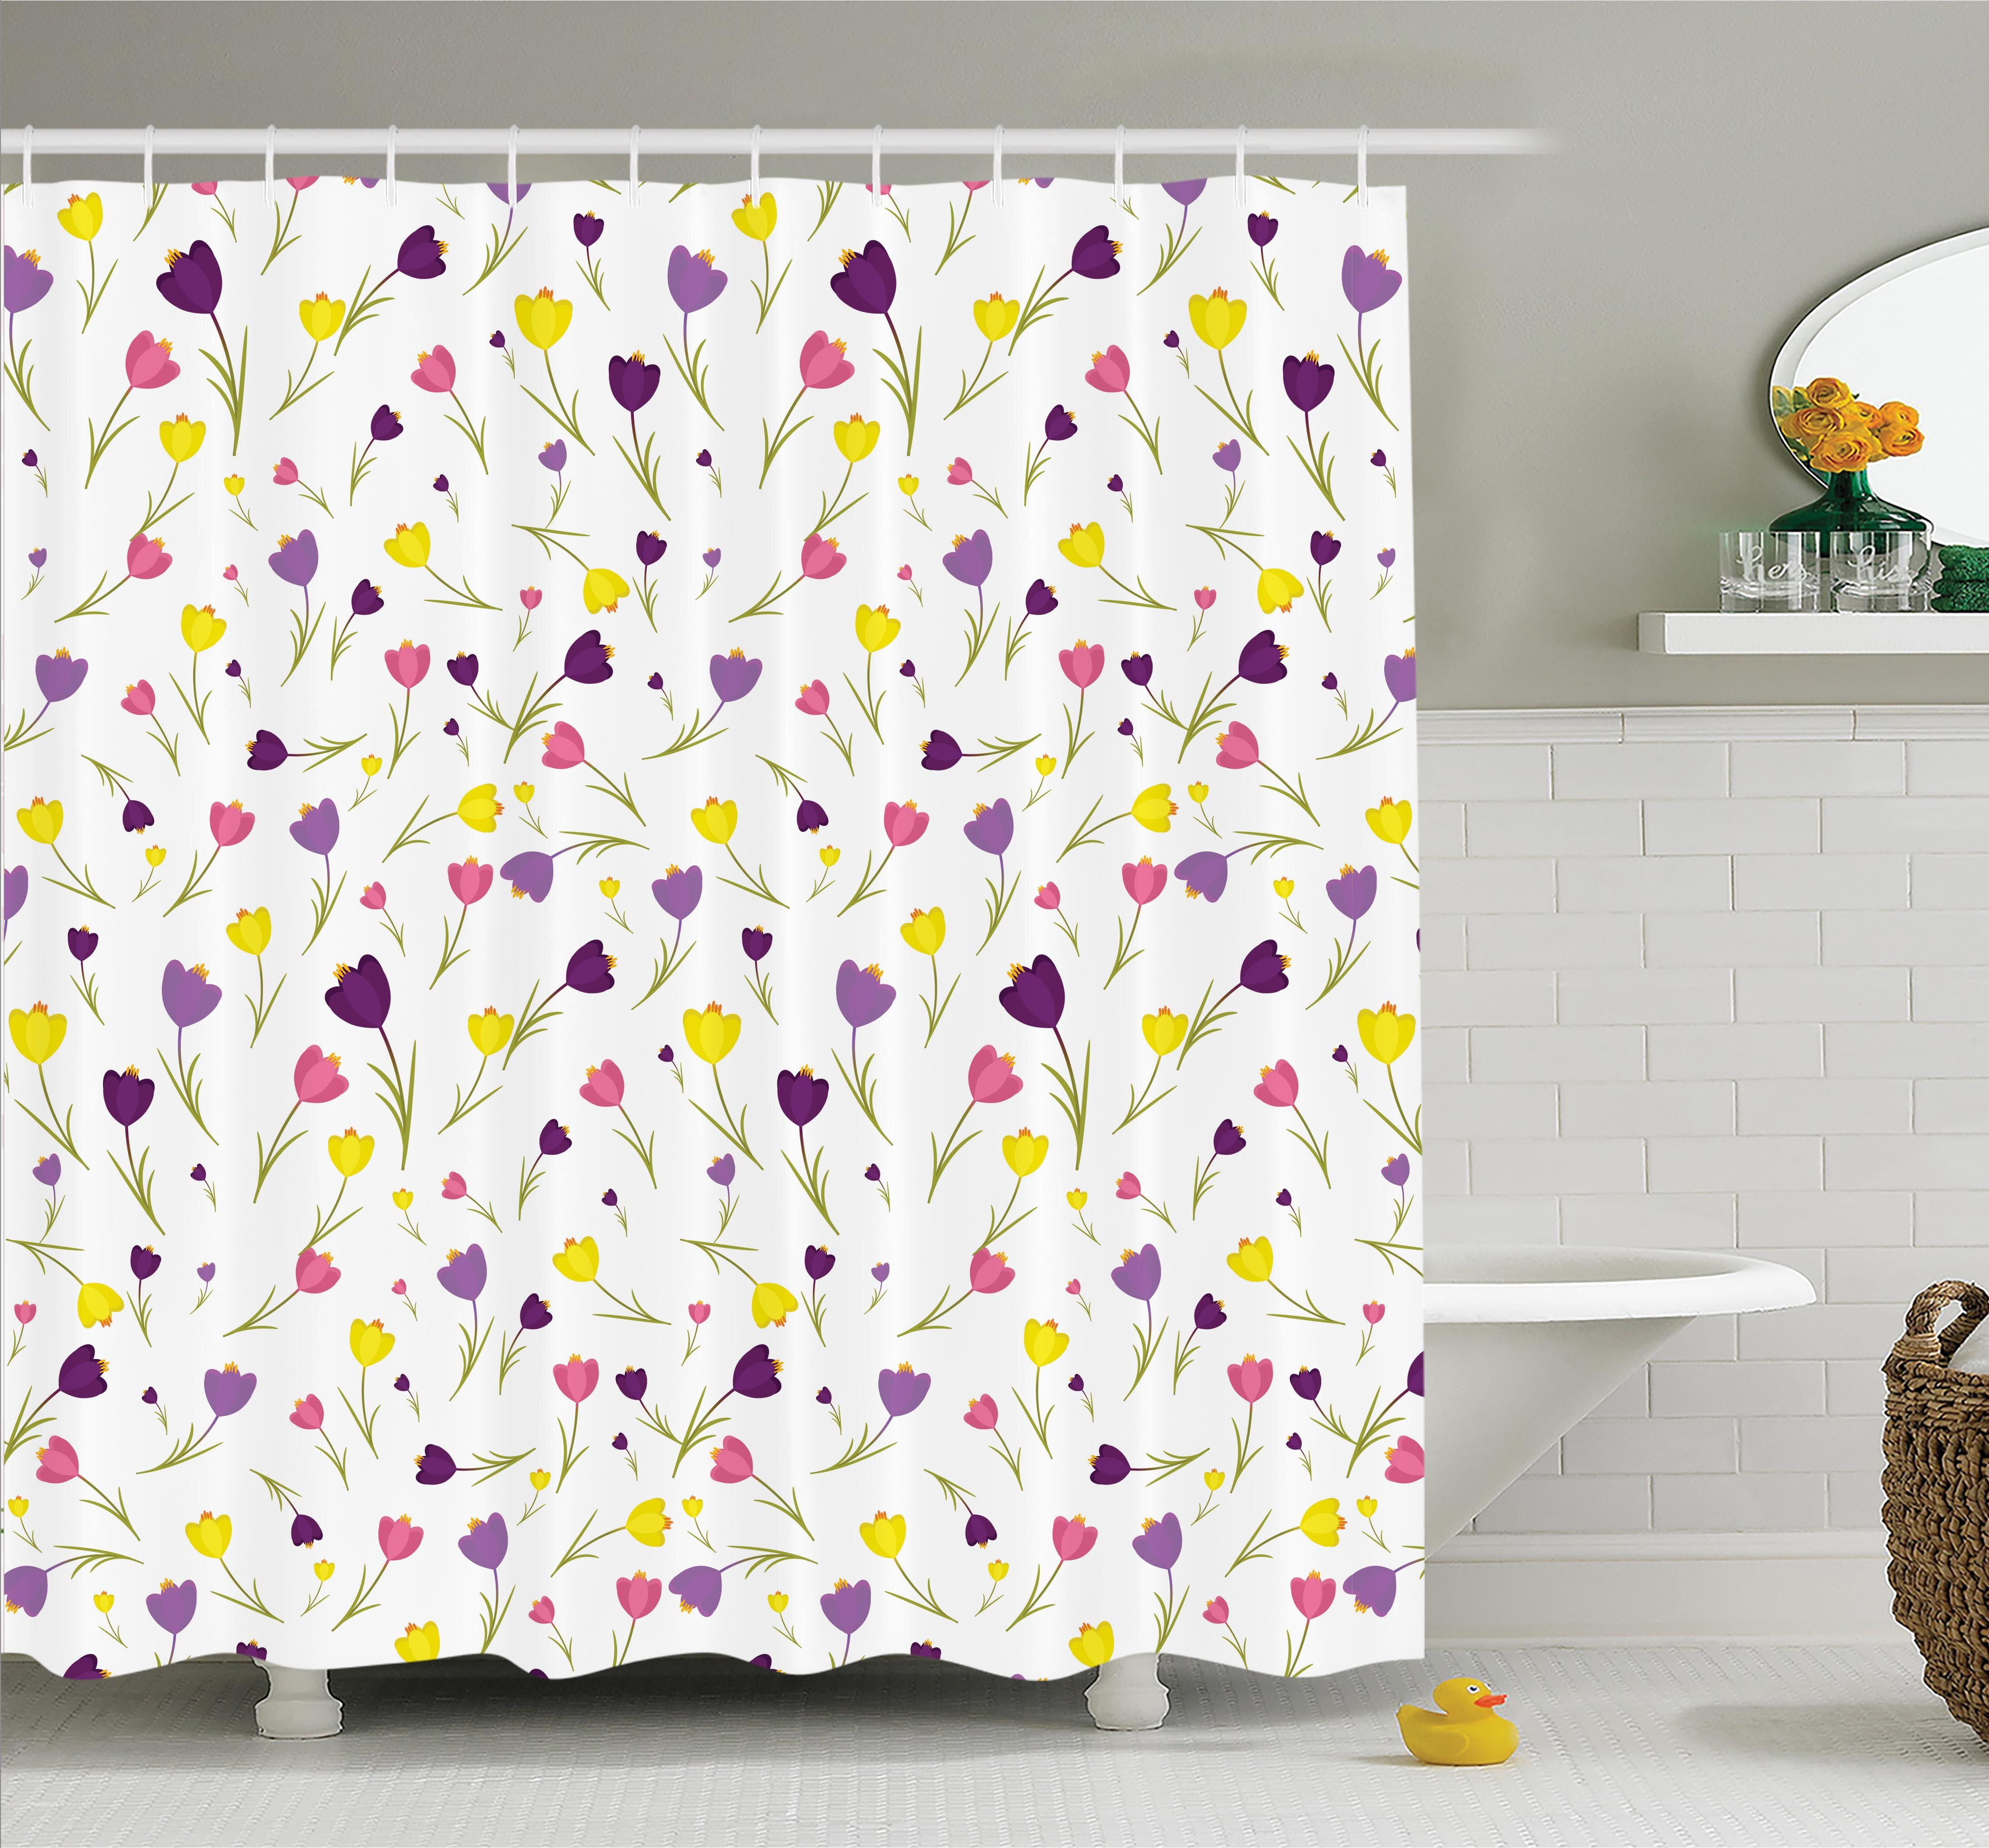 Harriet Bee Floyd Tulips Spring Romantic Shower Curtain Set